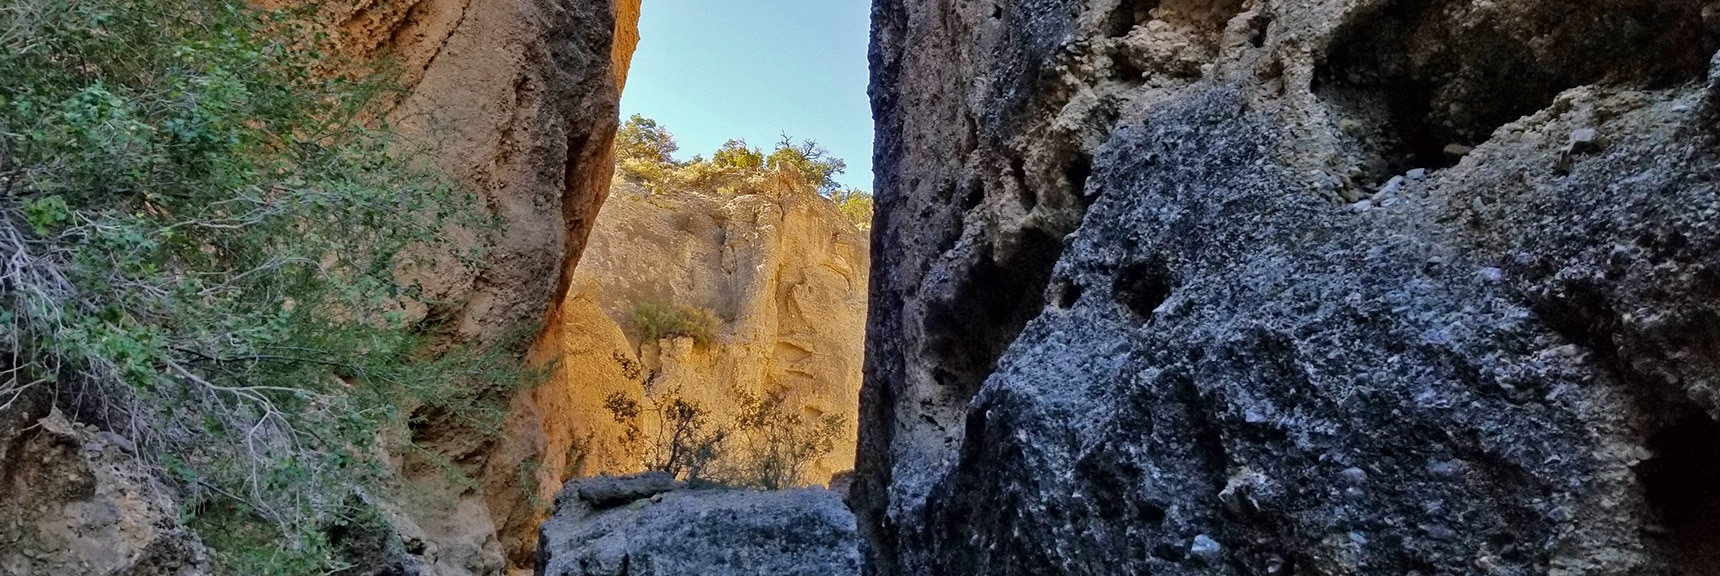 The Slot Canyon Portion is a Series of Narrow Areas Alternating with Open Areas | Harris Springs Canyon | Biking from Centennial Hills | Spring Mountains, Nevada